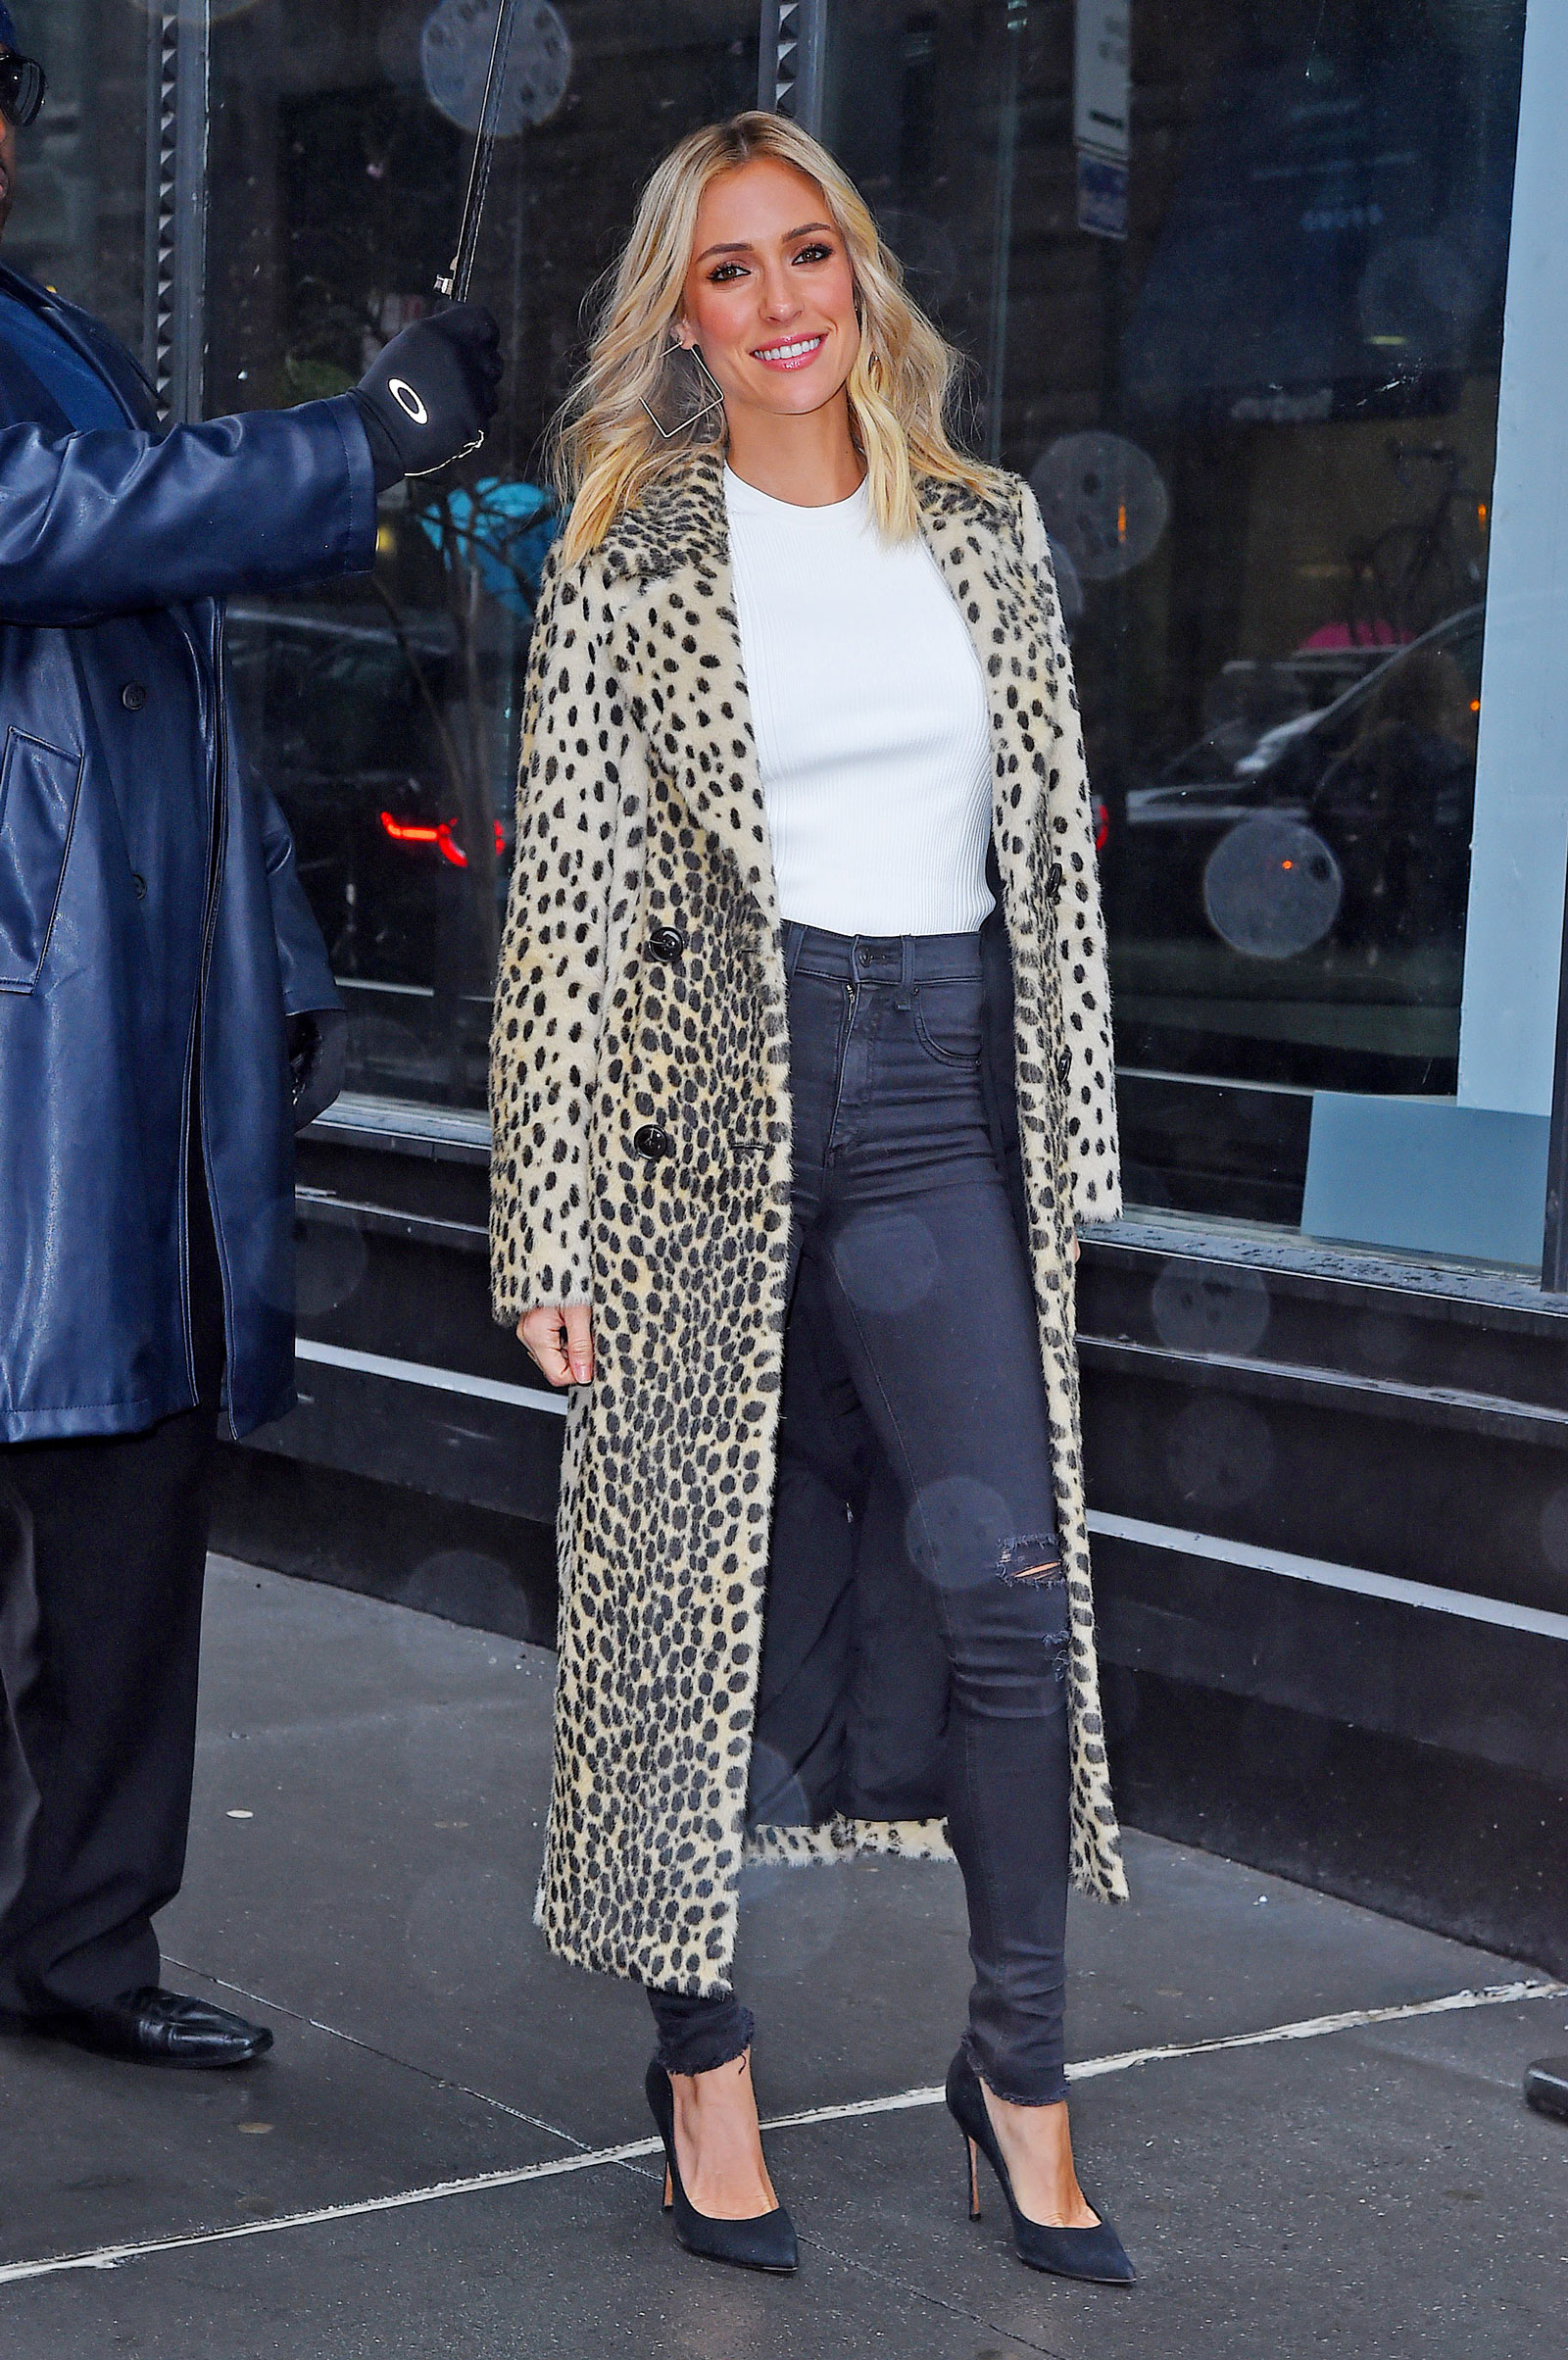 Kristin Cavallari Leopard Coat and Square Earrings